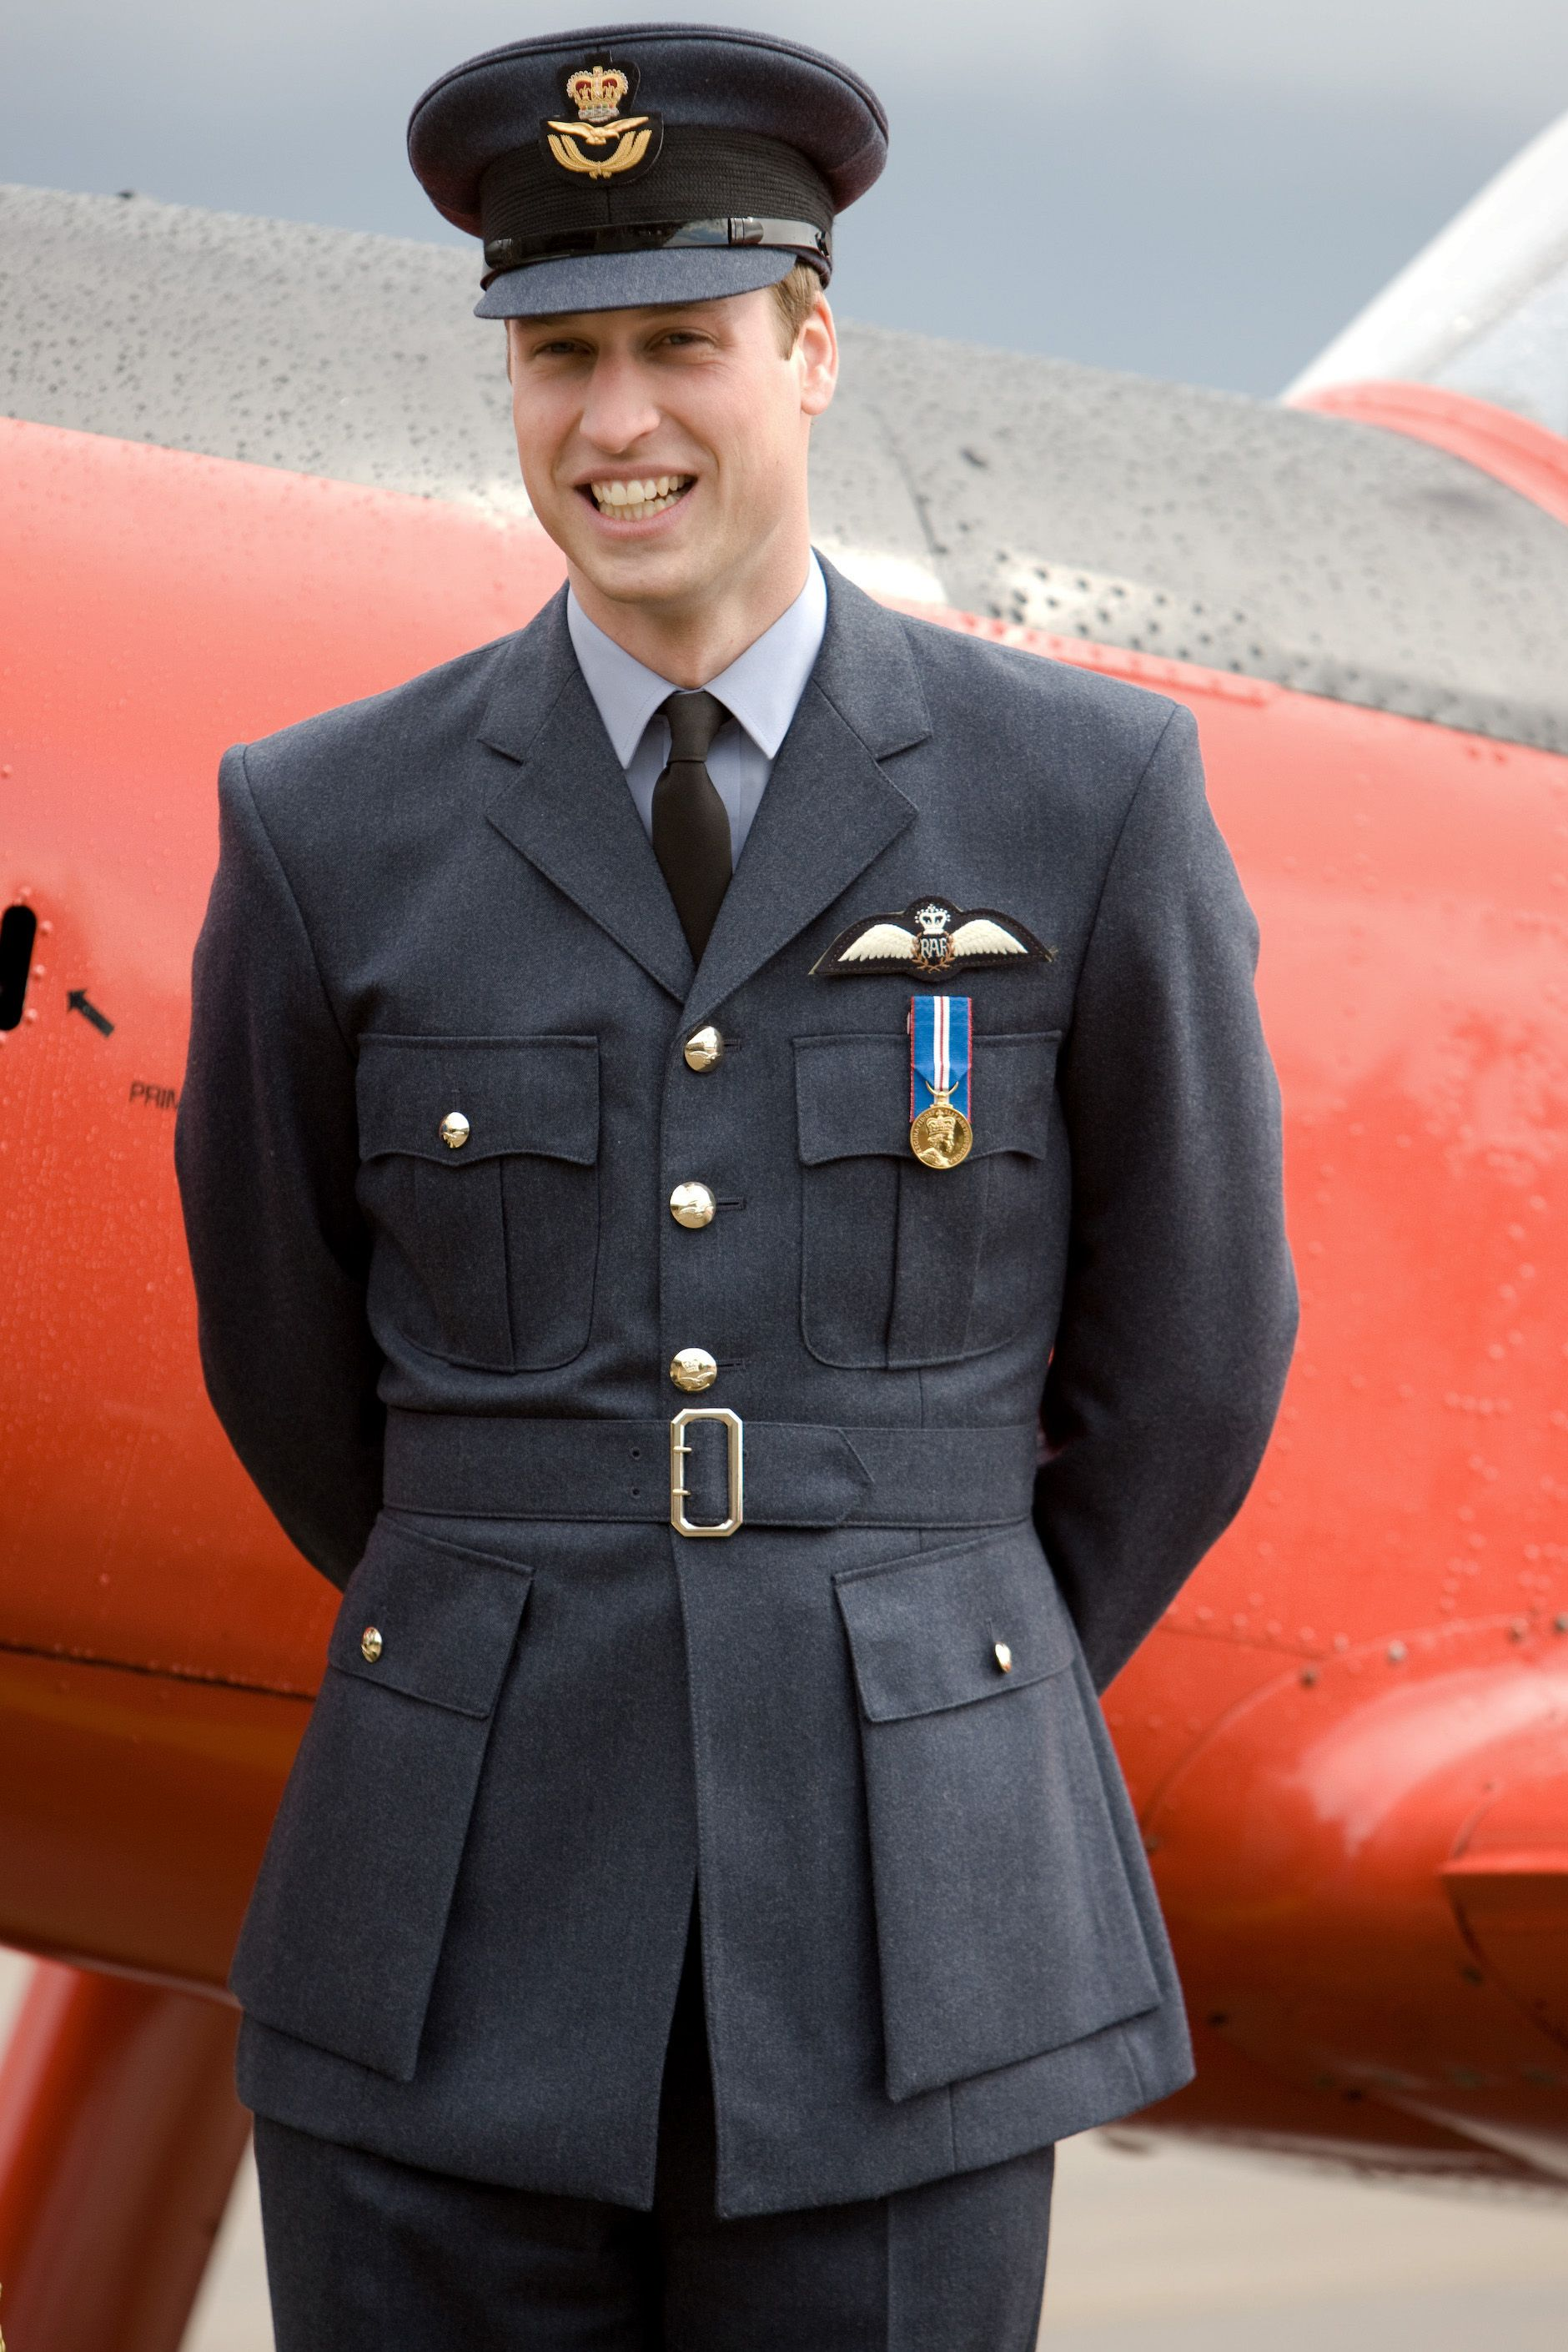 LINCOLNSHIRE, ENGLAND - APRIL 11: After receiving his RAF wings in a graduation ceremony, Prince William inspects the aircraft and helicopters at the Central Flying School at RAF Cranwell, in Sleaford on April 11, 2008 in Lincolnshire, England. (Photo by Tim Graham/Getty Images) *** Local Caption *** Prince William